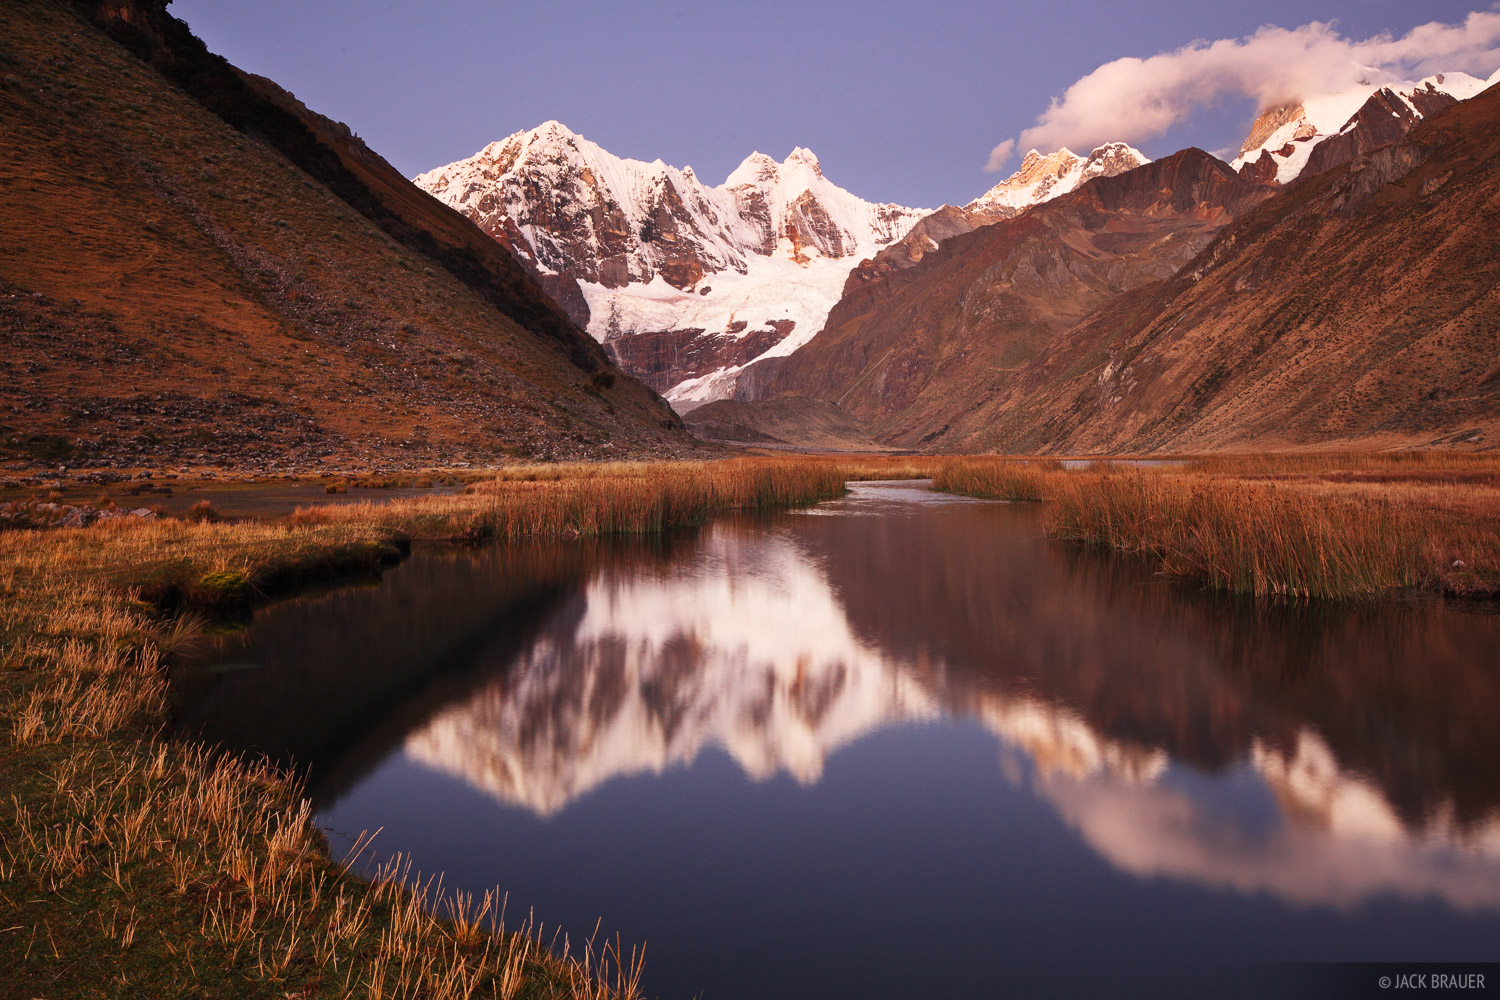 Jirishanca, Cordillera Huayhuash, Peru, Laguna Jahuacocha, reflection, photo